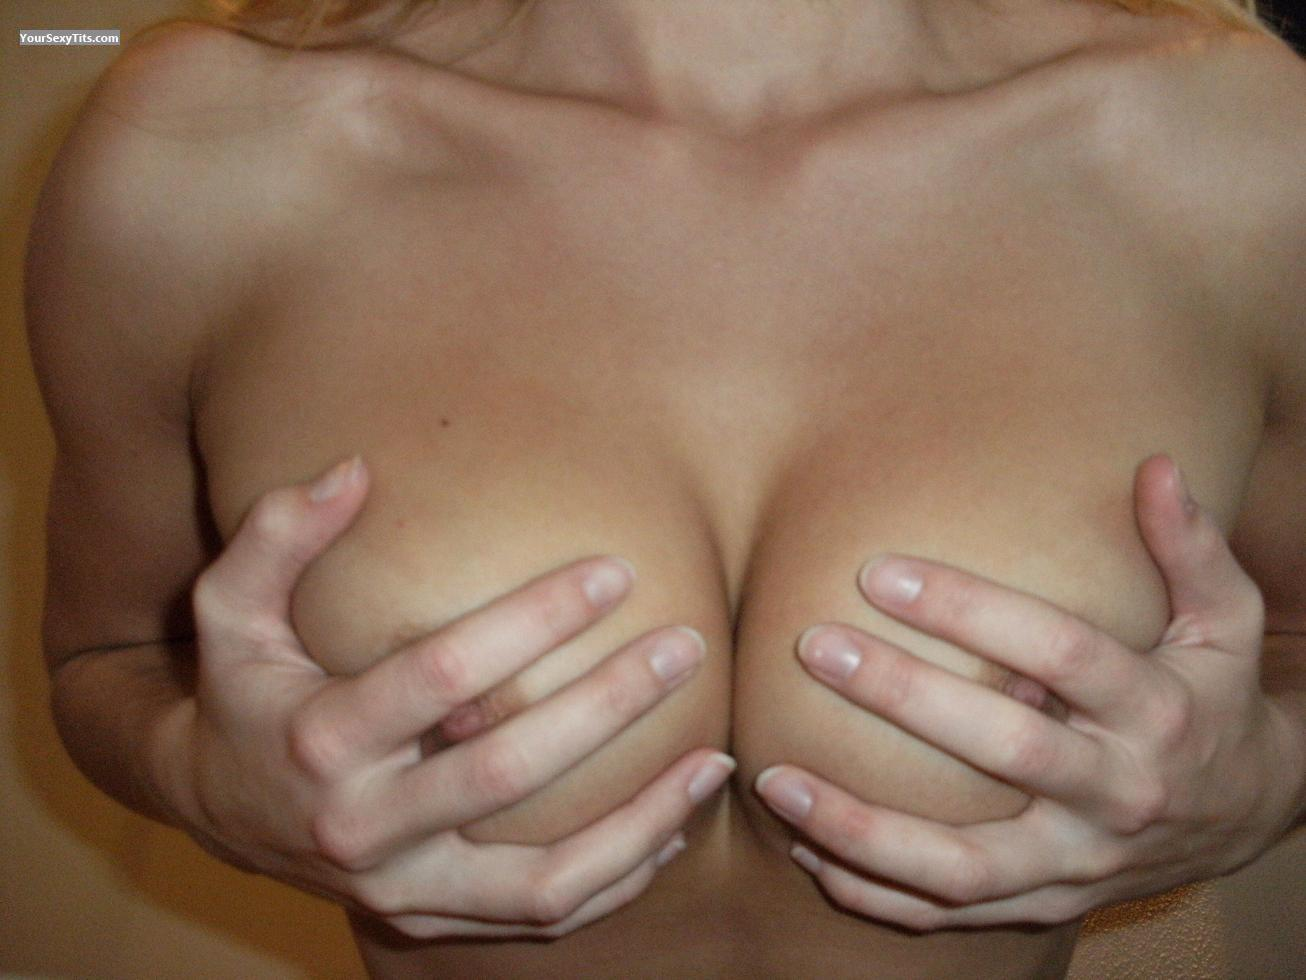 Medium Tits Gf 19yo Tits 1st Time